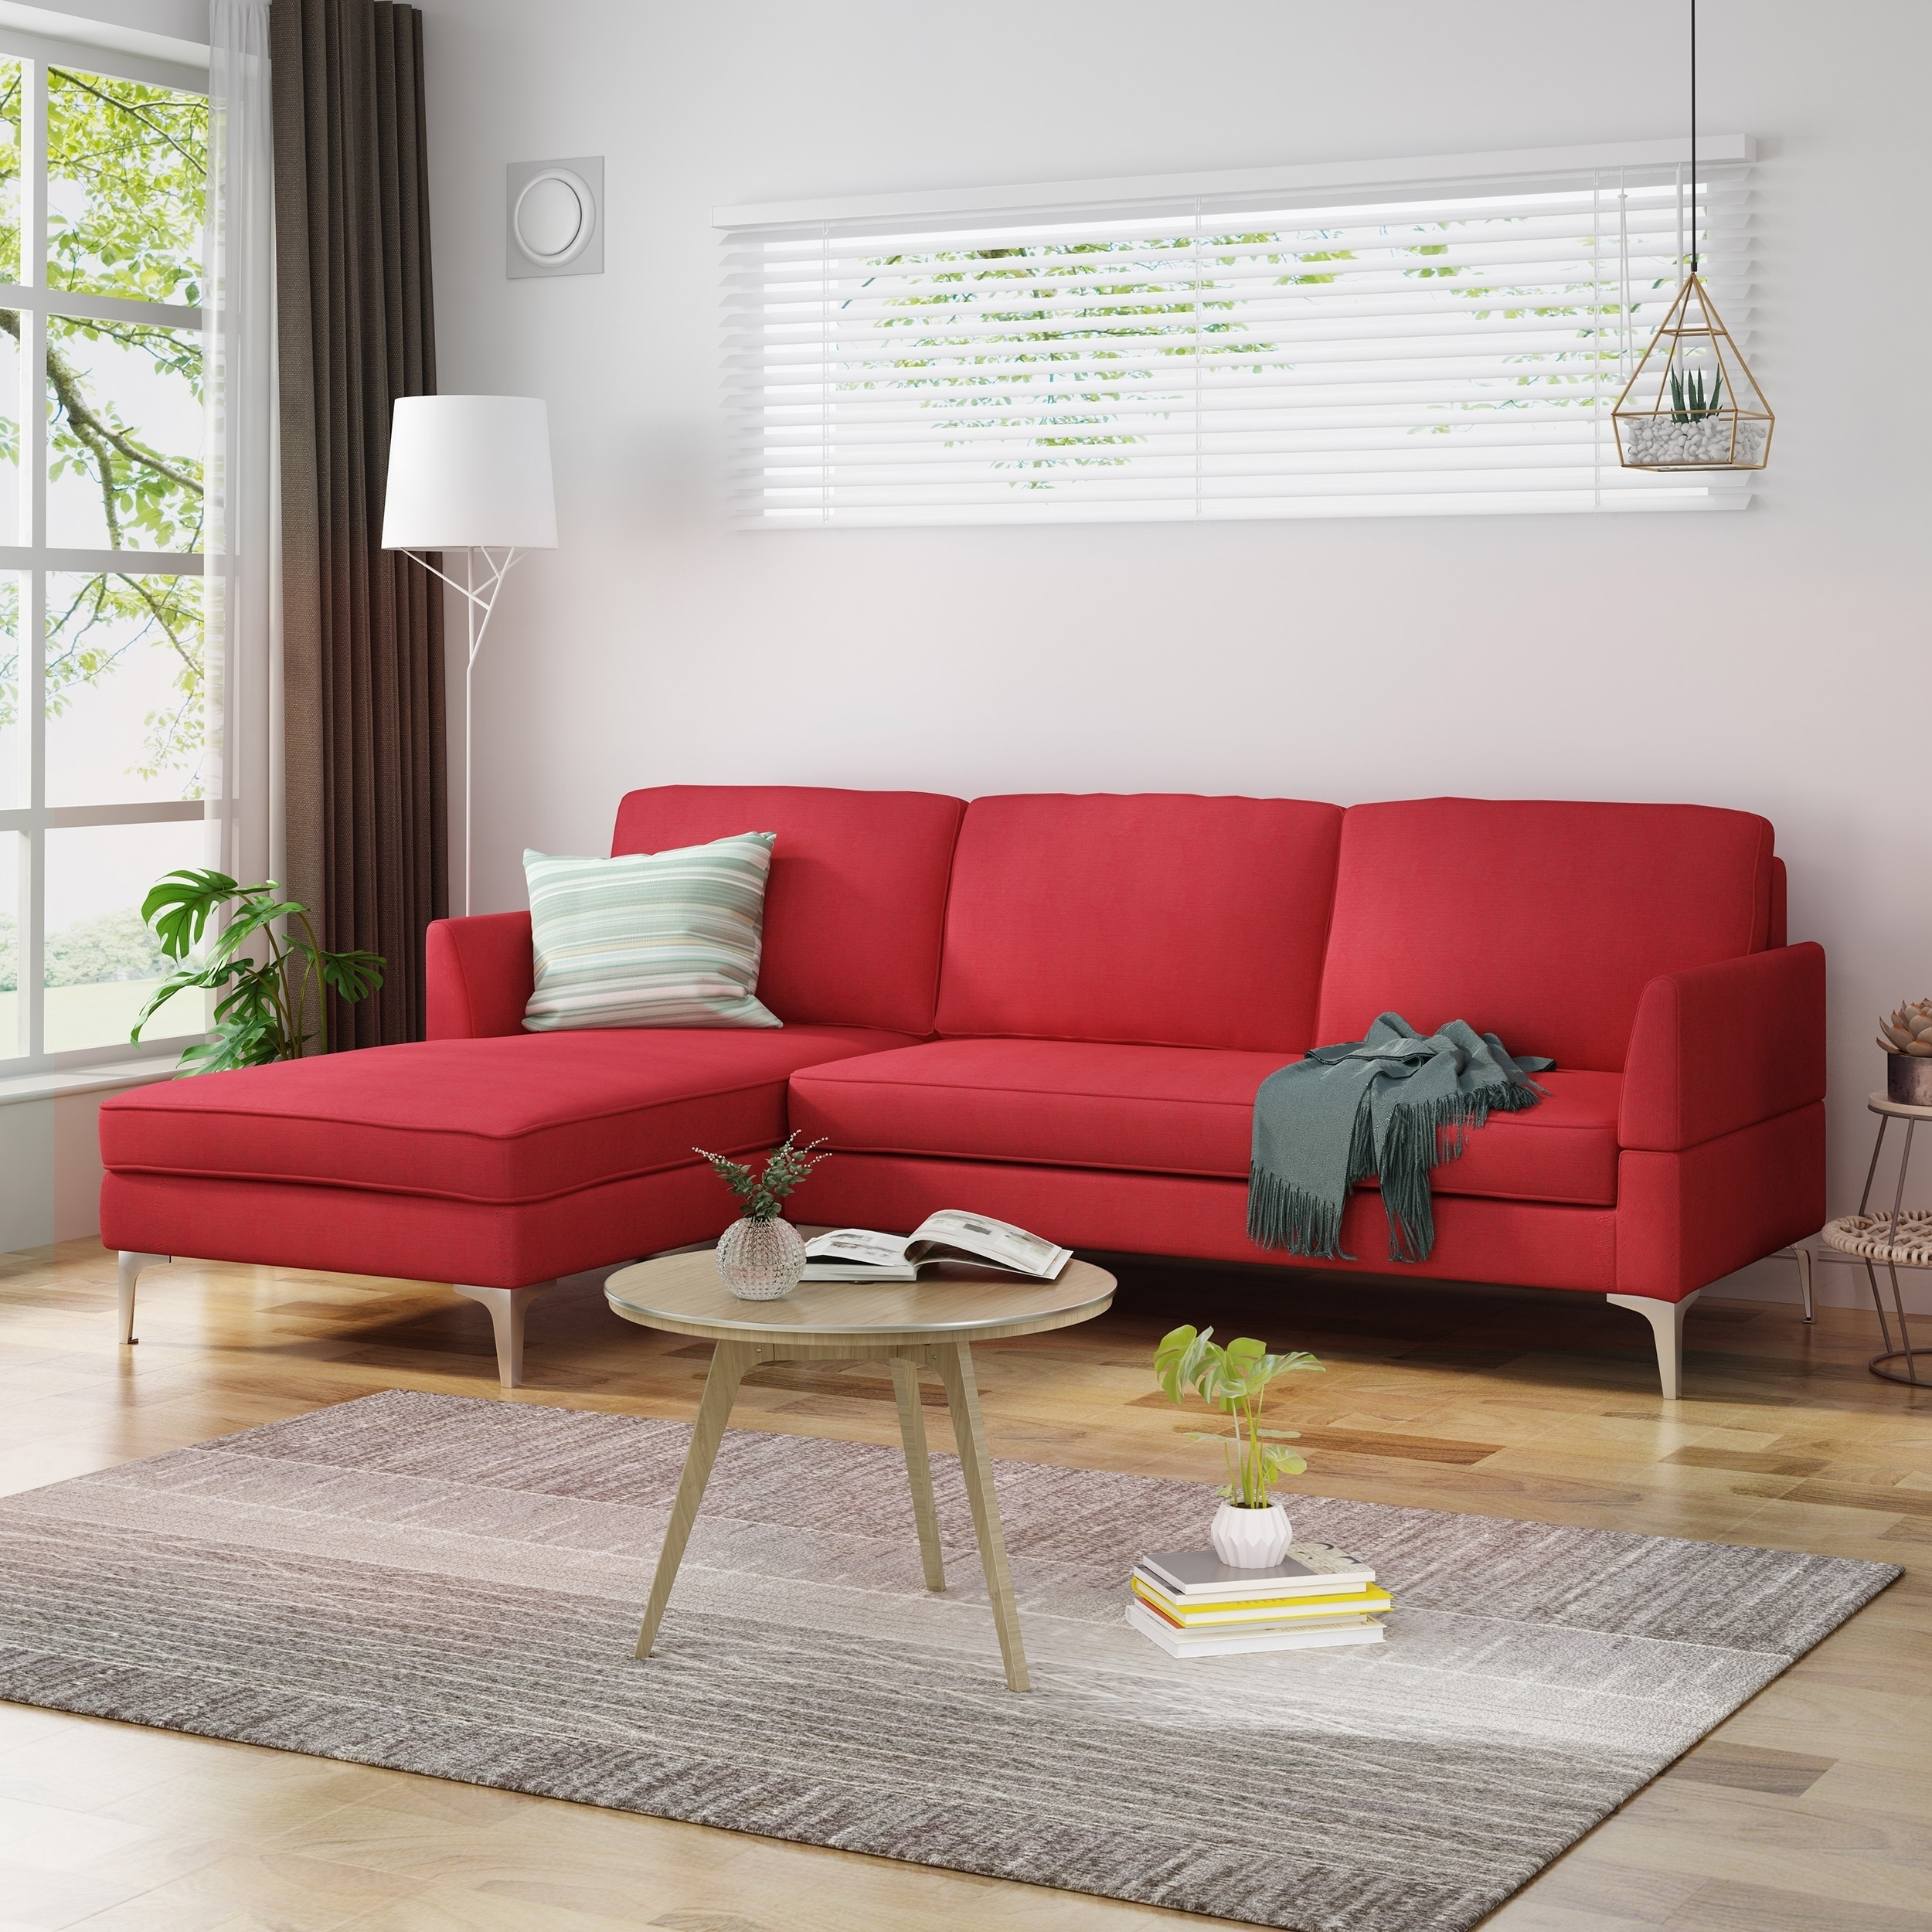 Red Sectional Sofas Online At Our Best Living Room Furniture Deals